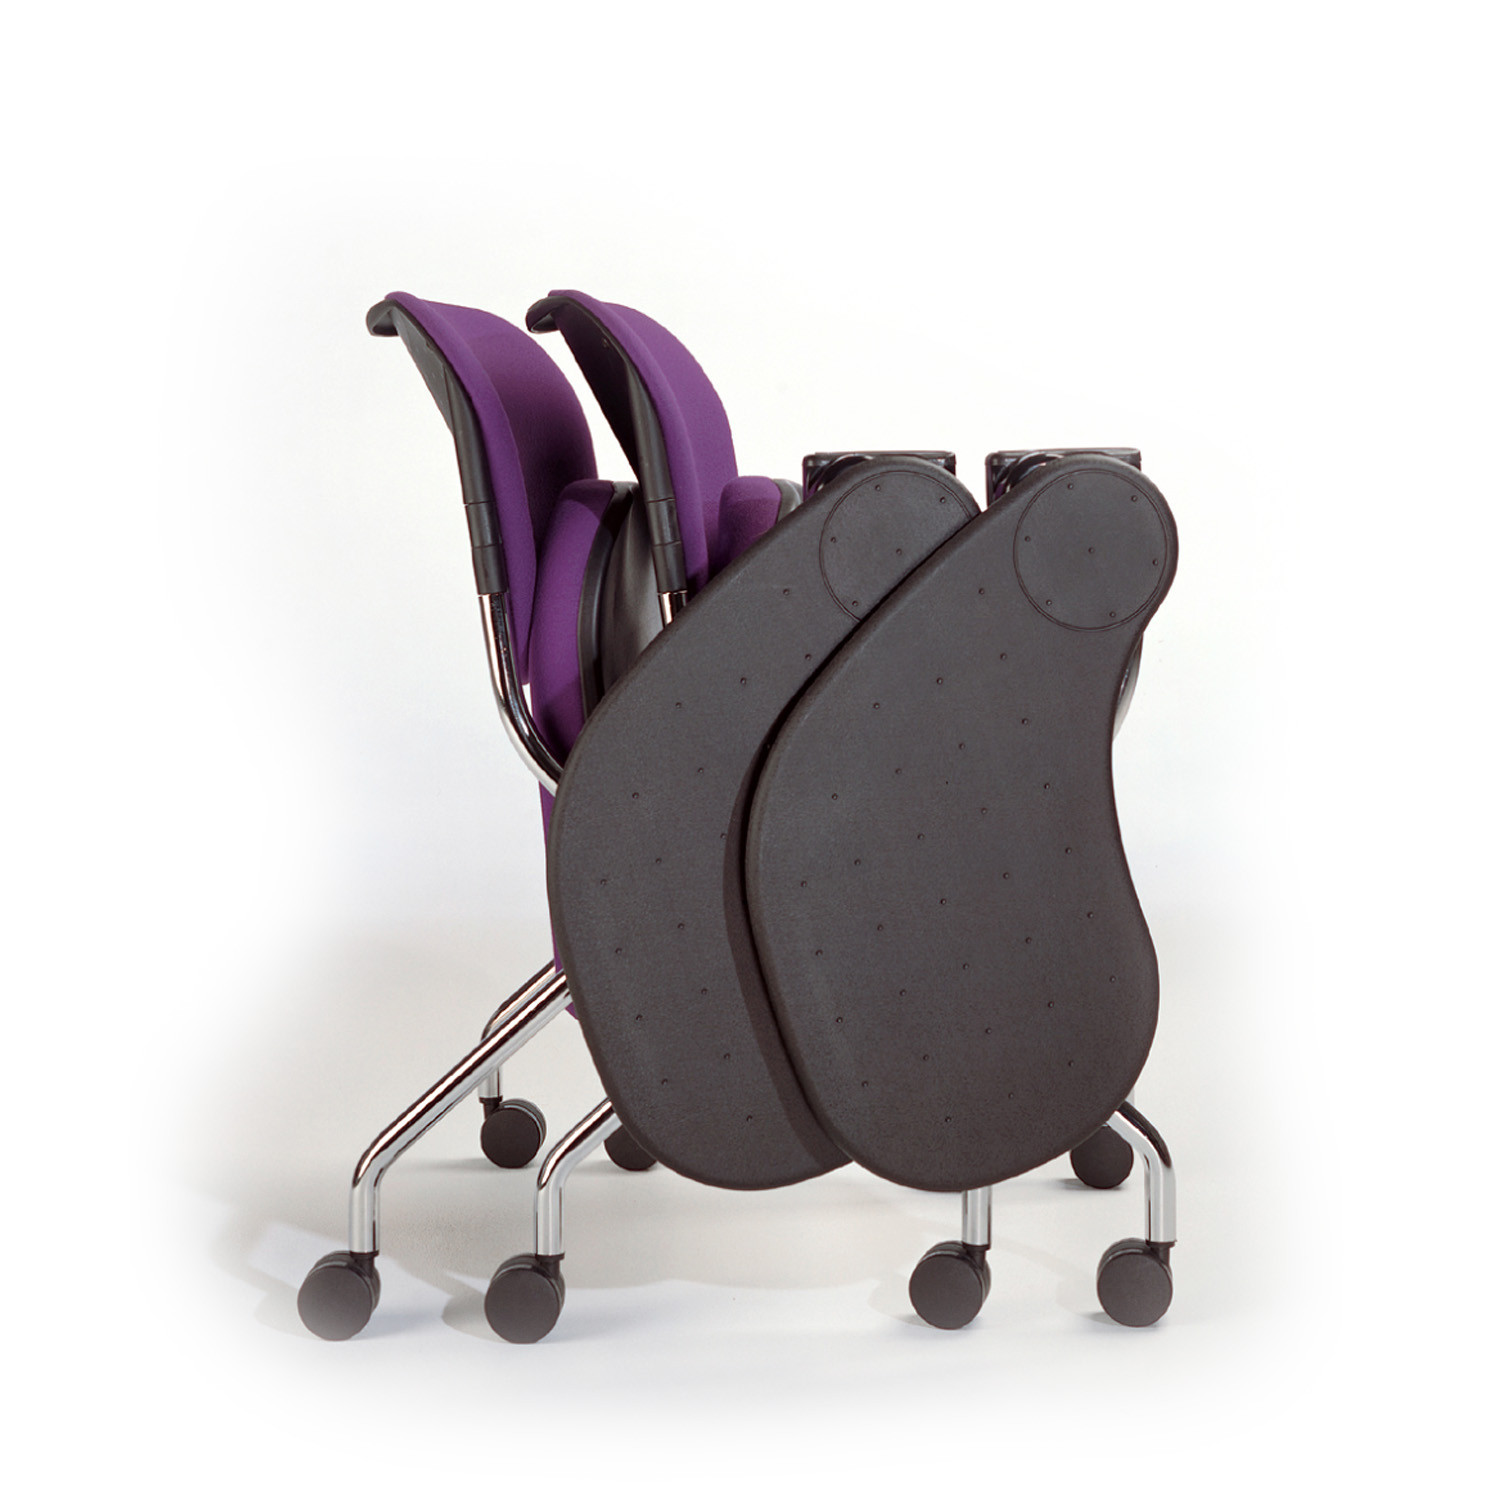 Torsion on the Go Chairs